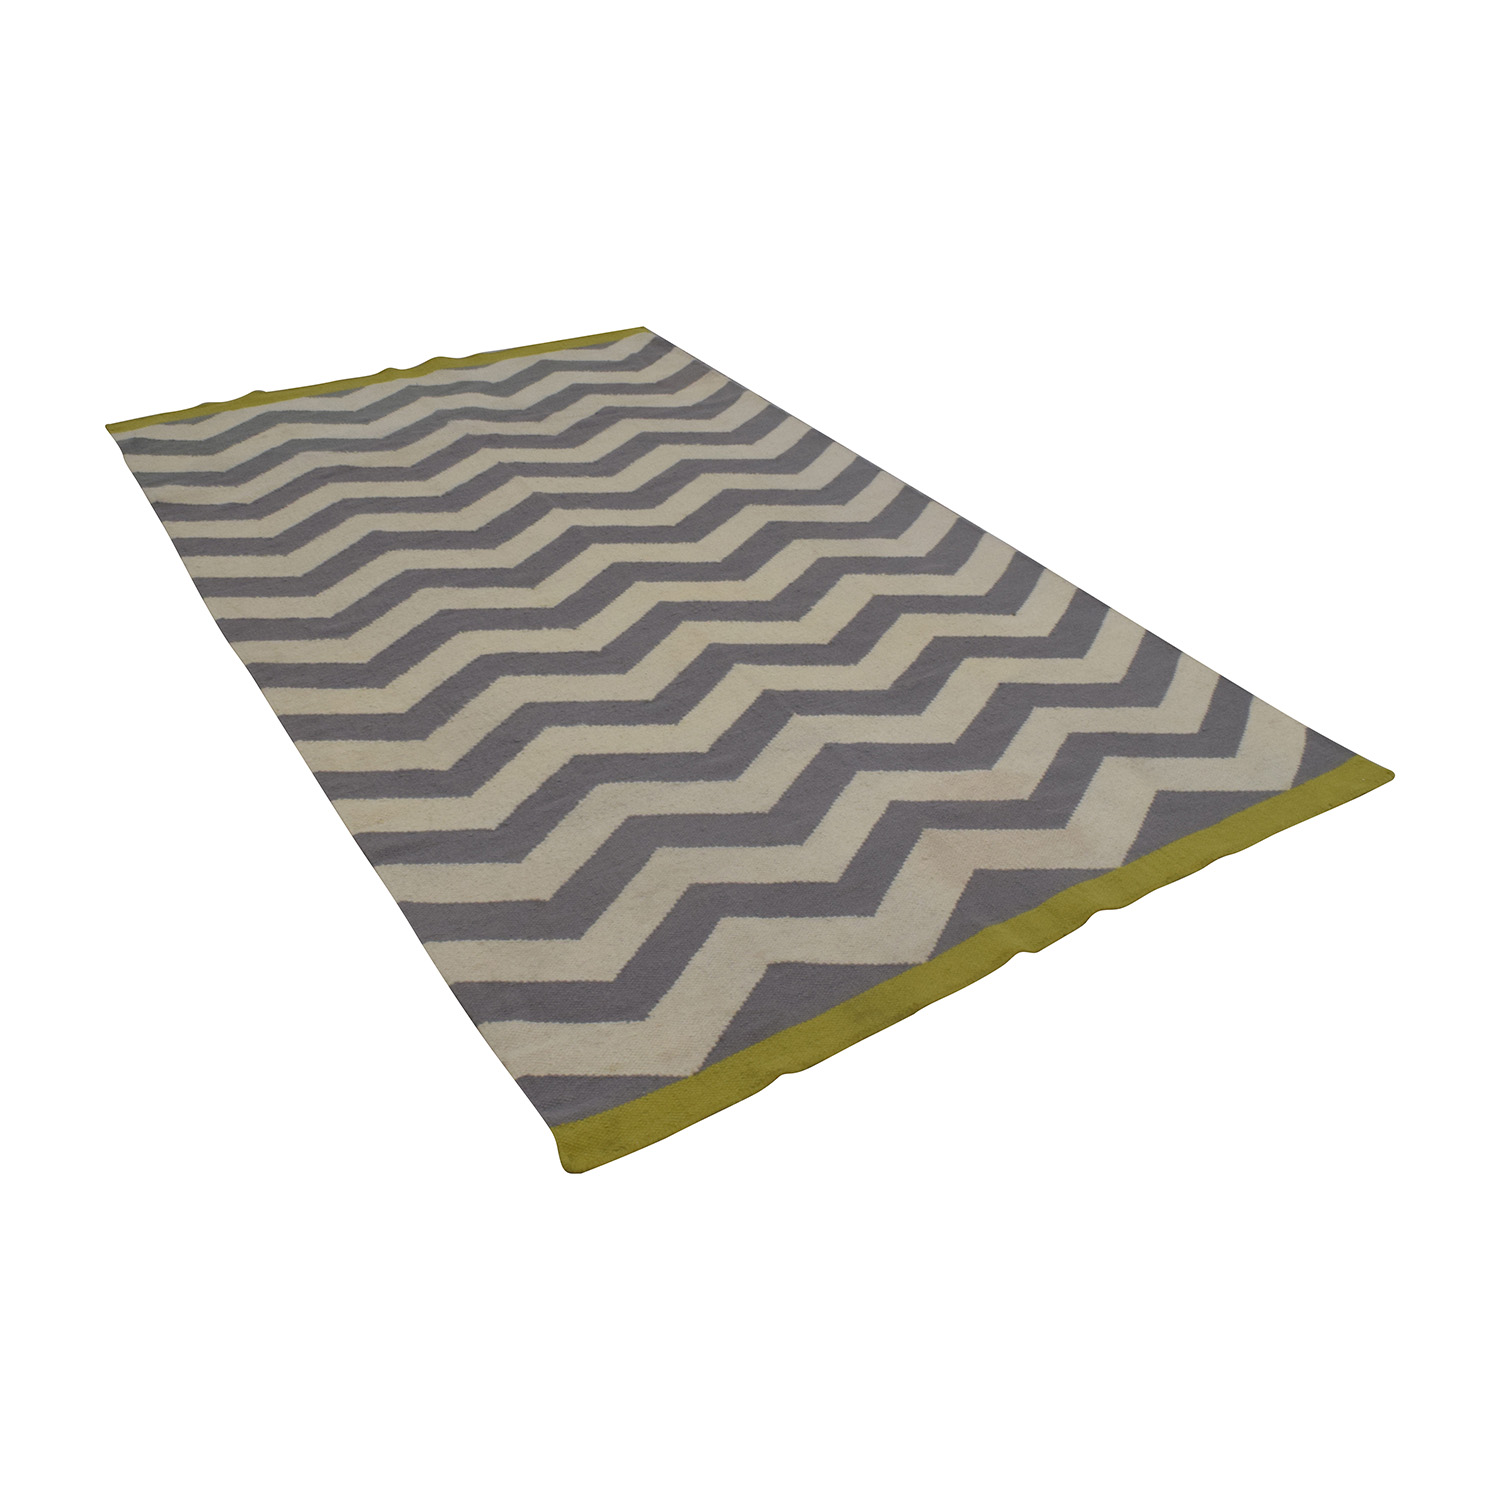 West Elm West Elm Zigzag Selvedge Rug nj